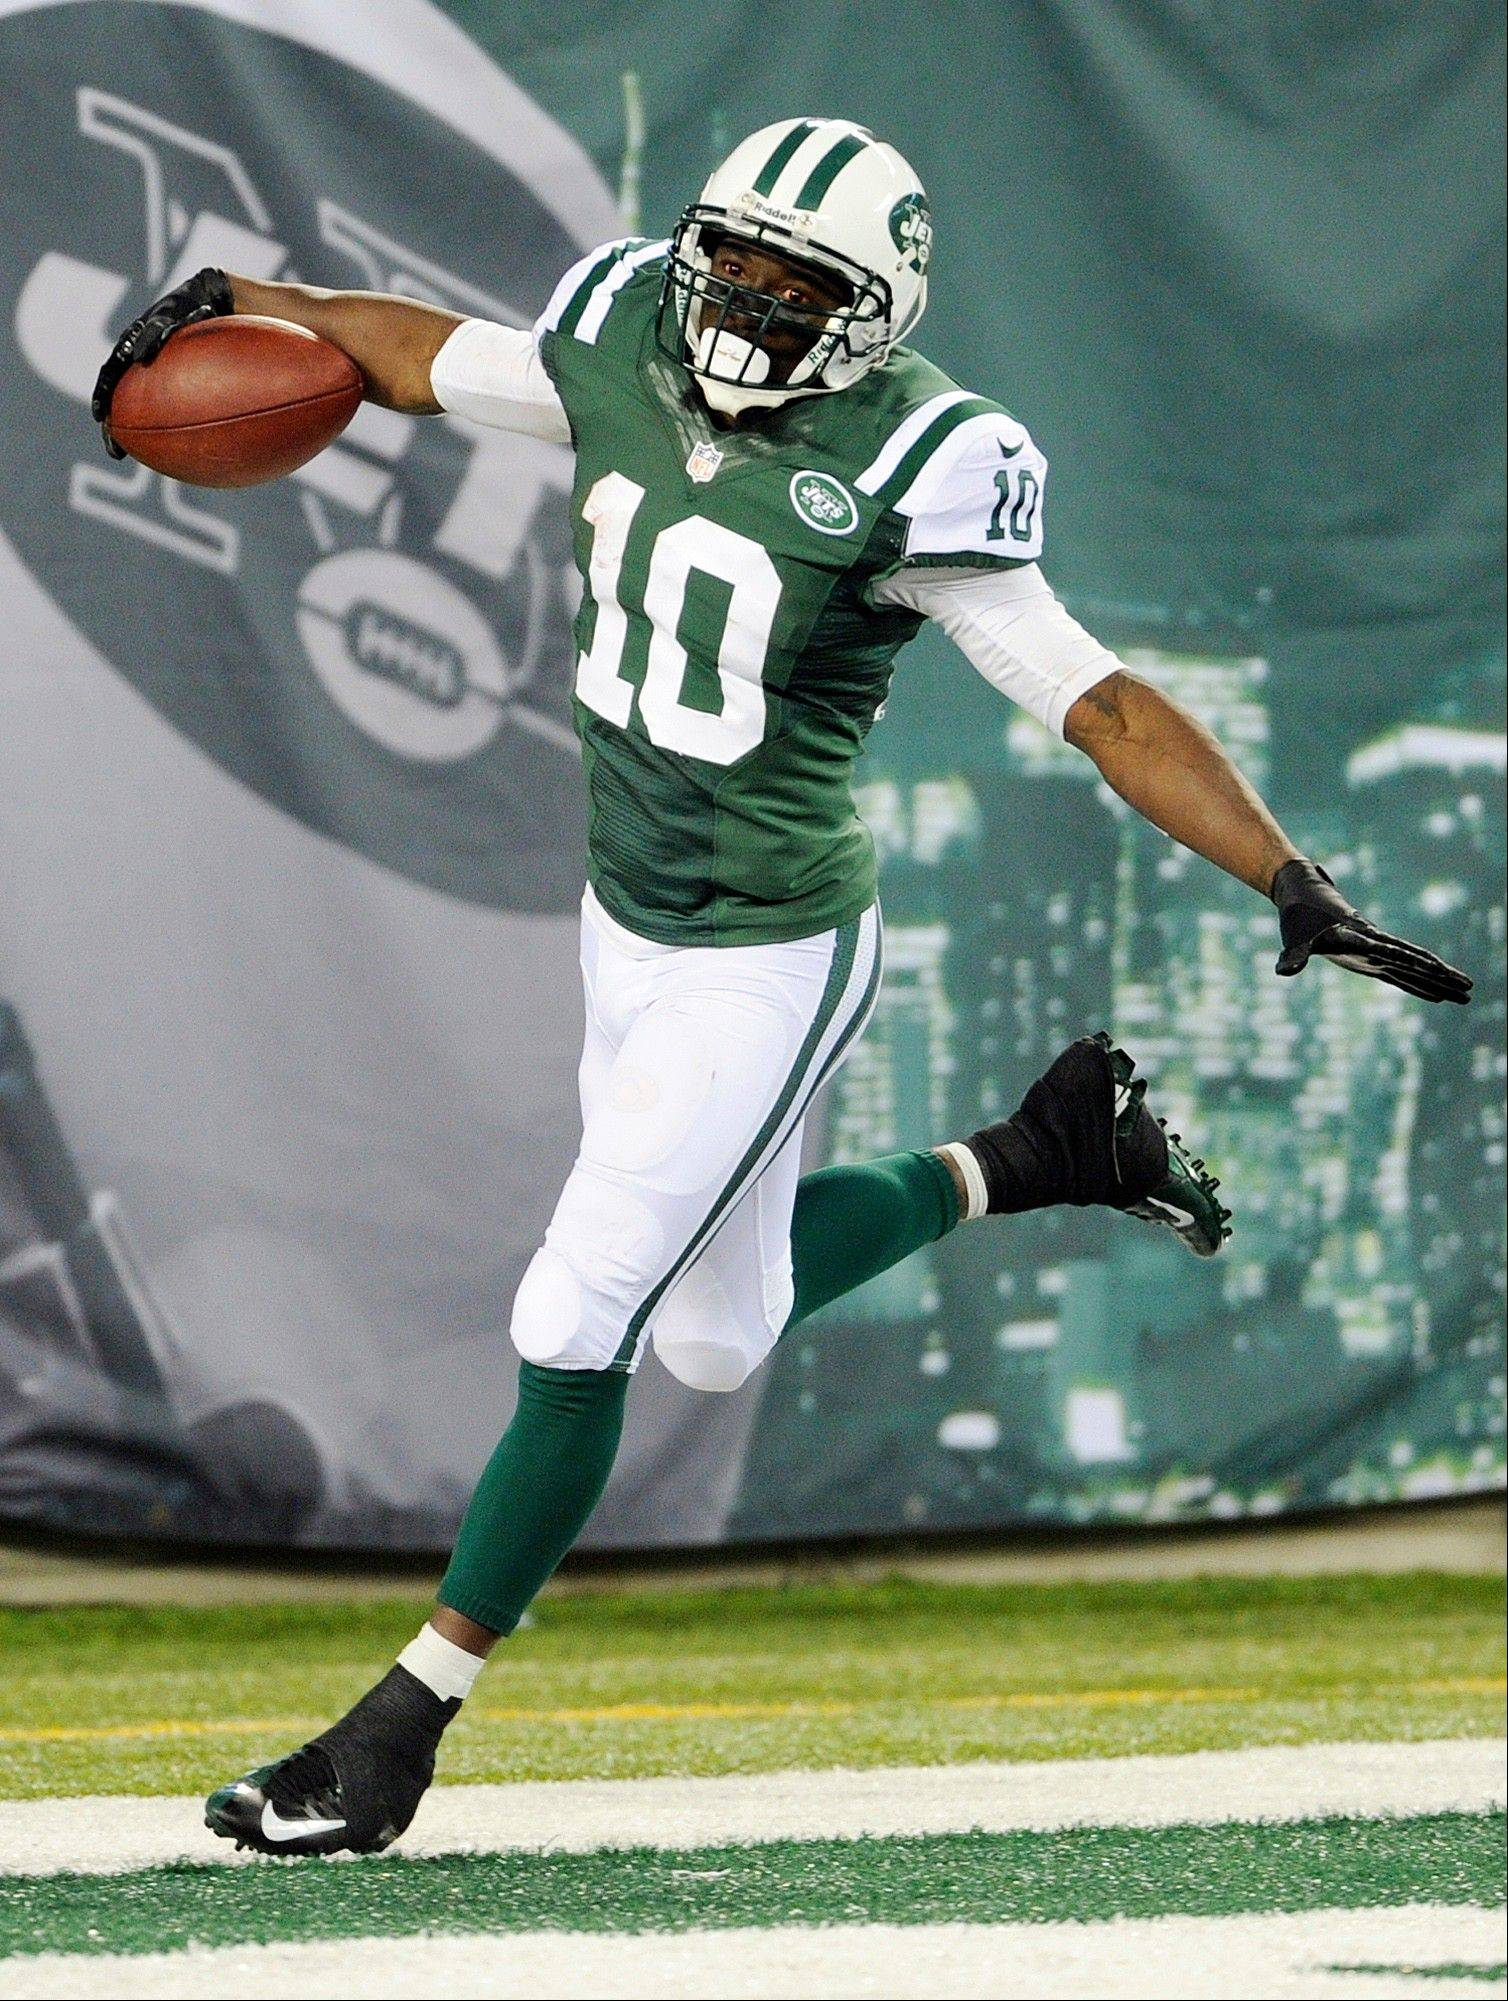 New York Jets wide receiver Santonio Holmes (10) celebrates after scoring a touchdown during the second half of an NFL football game against the Buffalo Bills Sunday, Sept. 22, 2013, in East Rutherford, N.J.